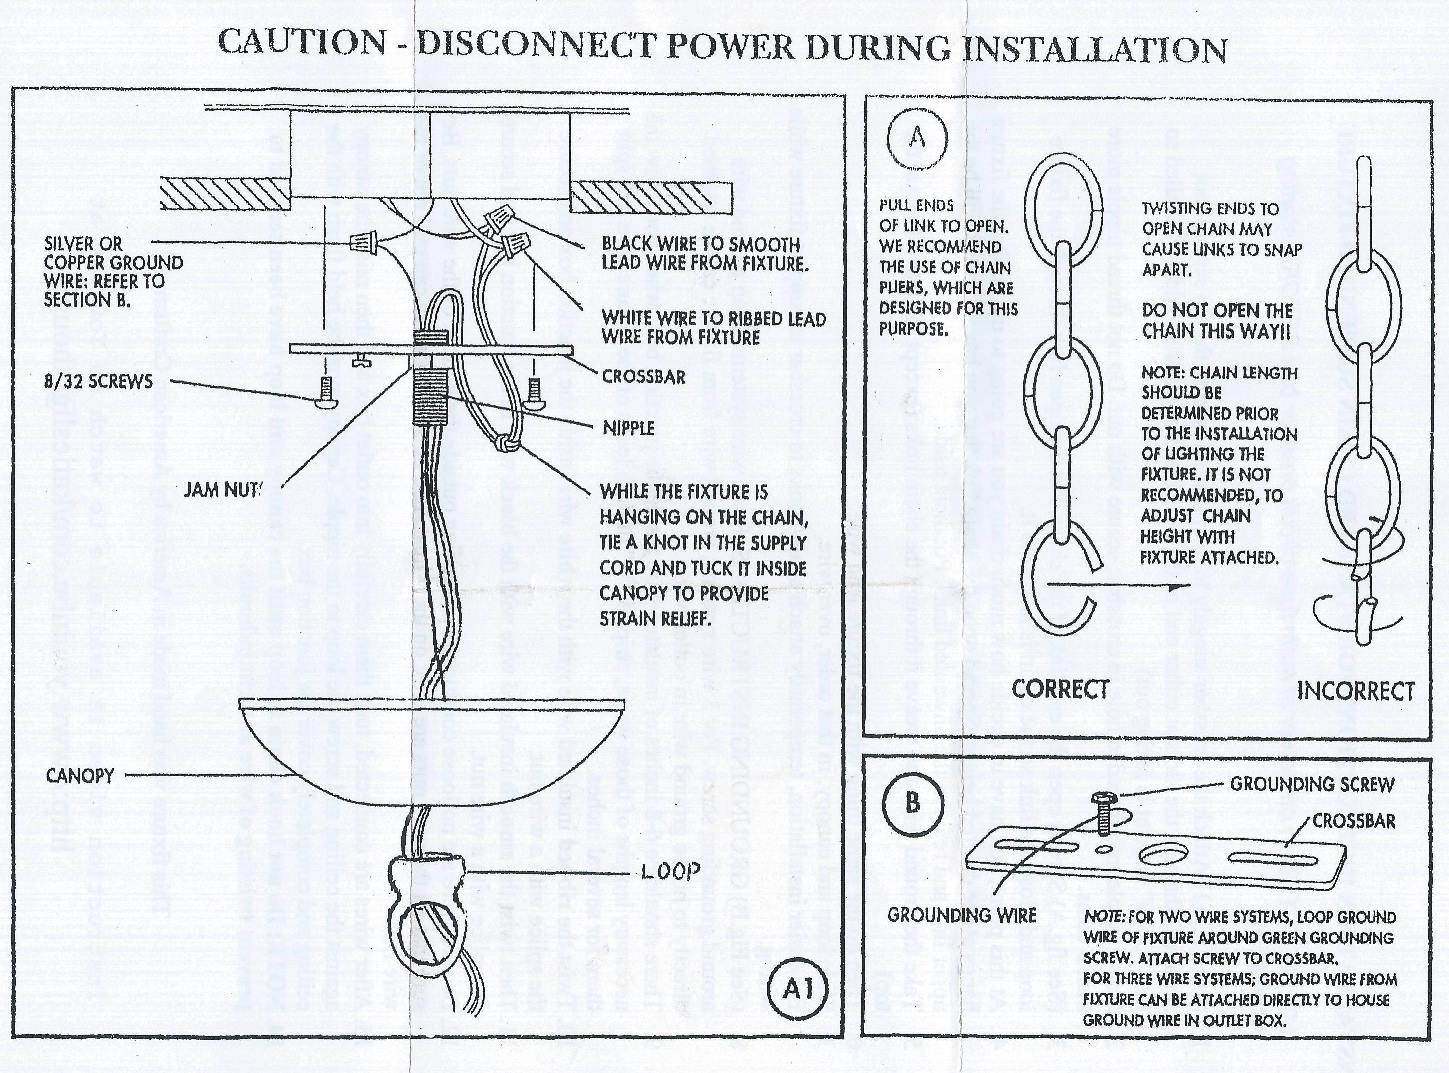 Electrical Wiring Chart For A Chandelier - House Wiring Diagram ...